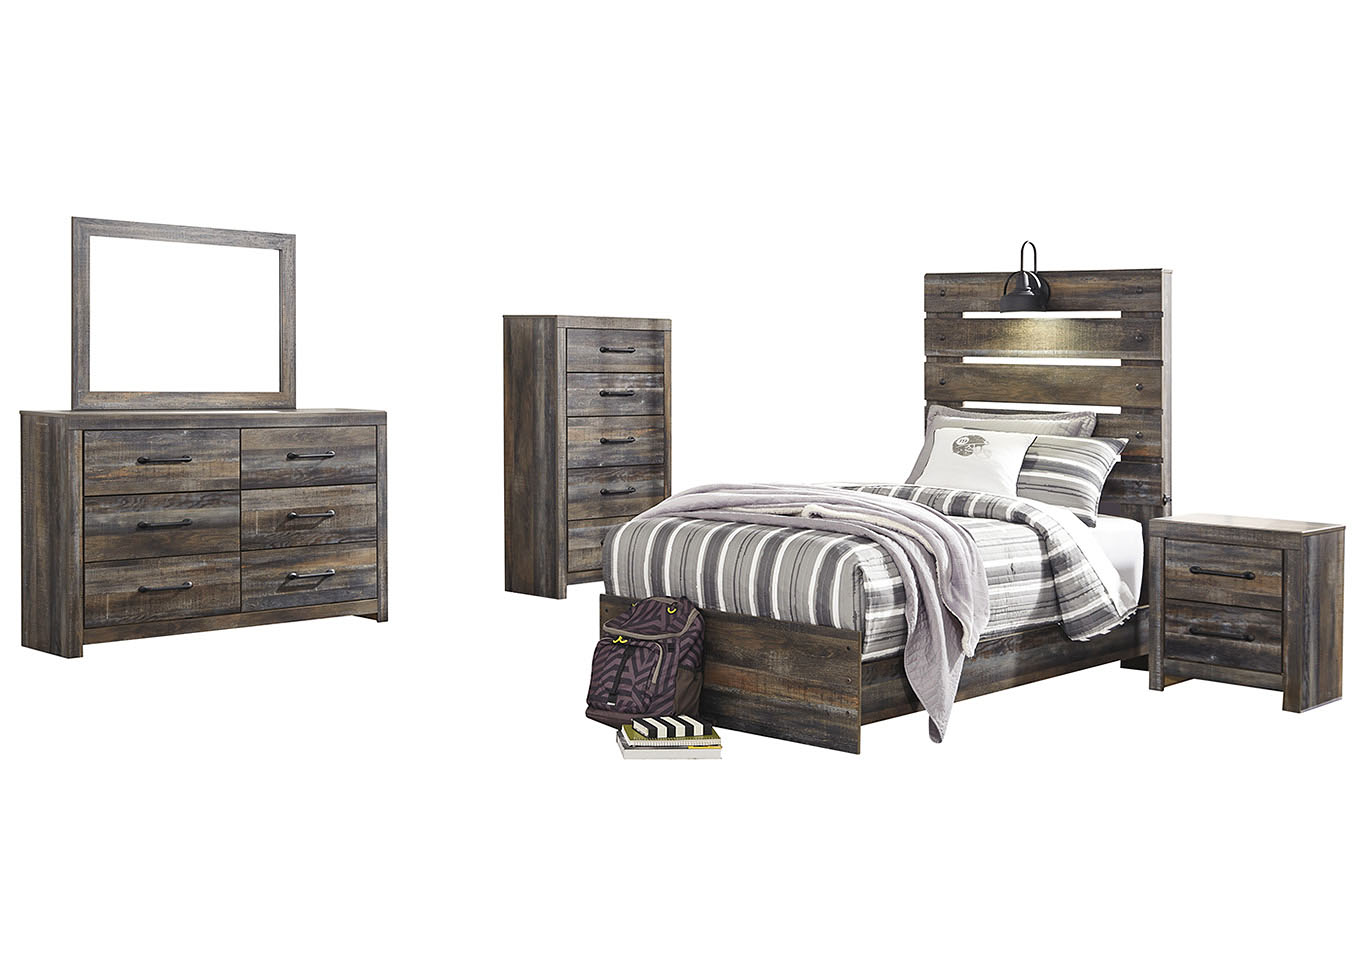 Drystan Twin Panel Bed w/Dresser and Mirror,Signature Design By Ashley